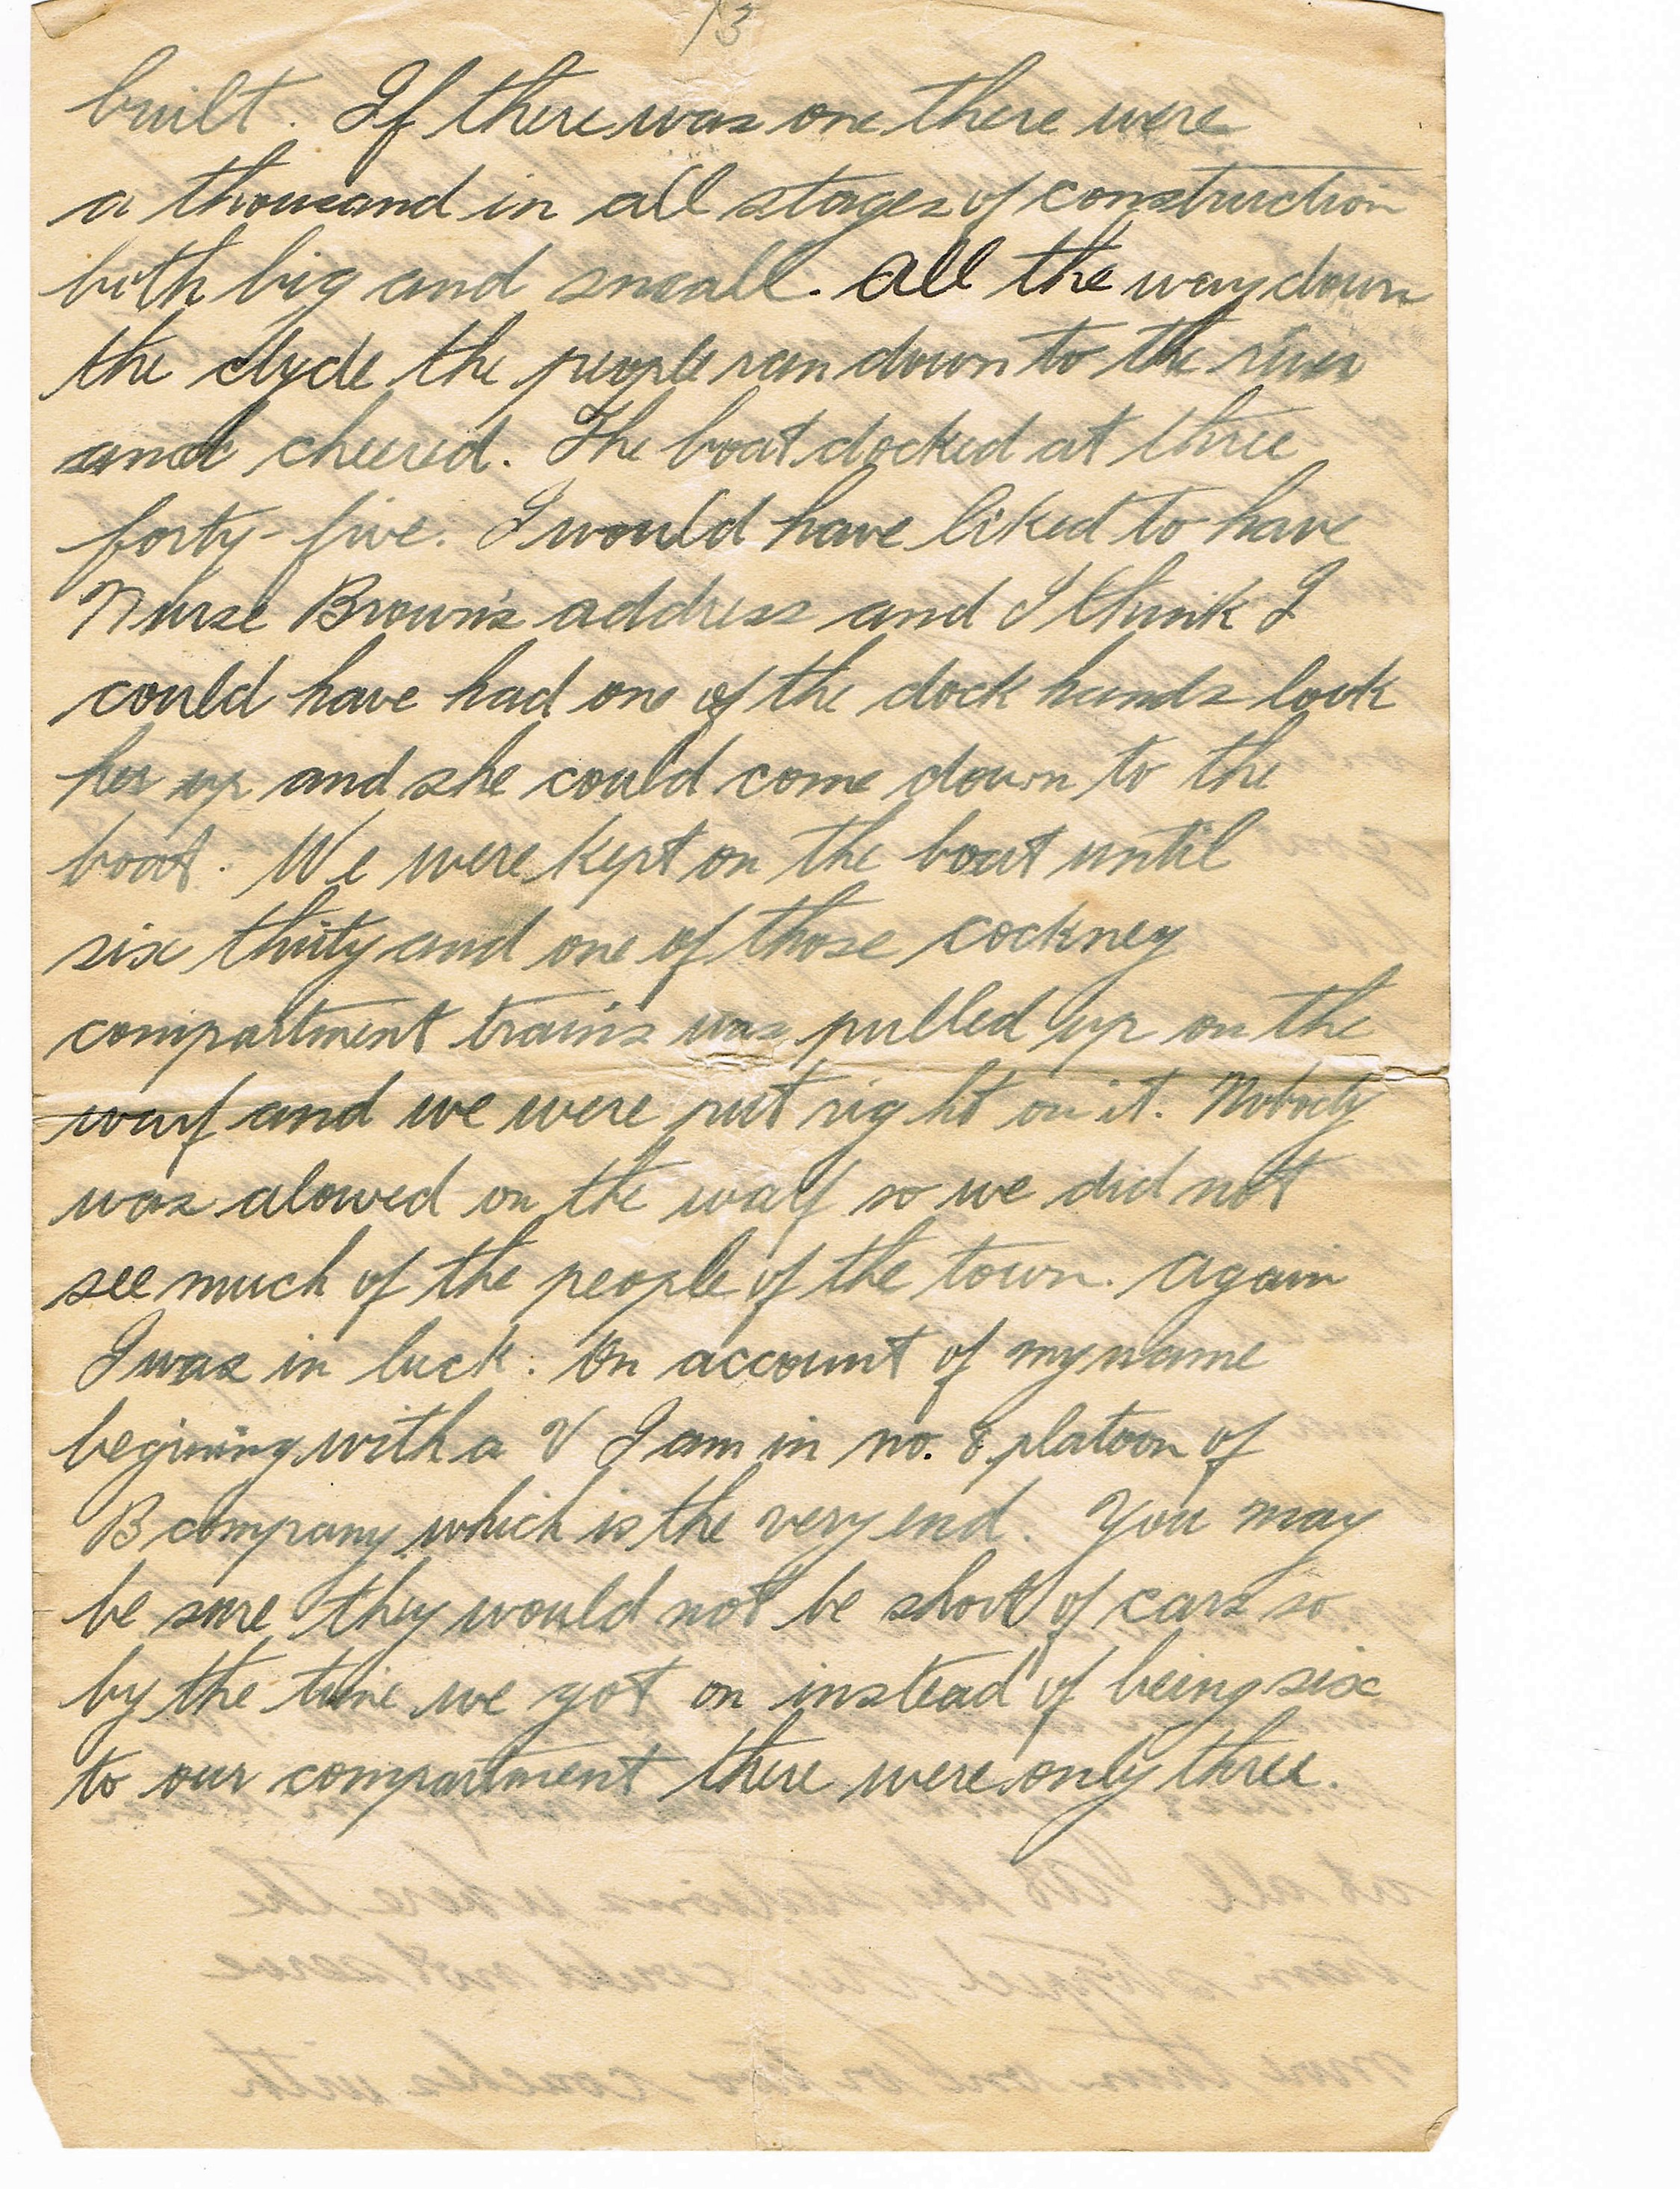 13th page of handwritten letter